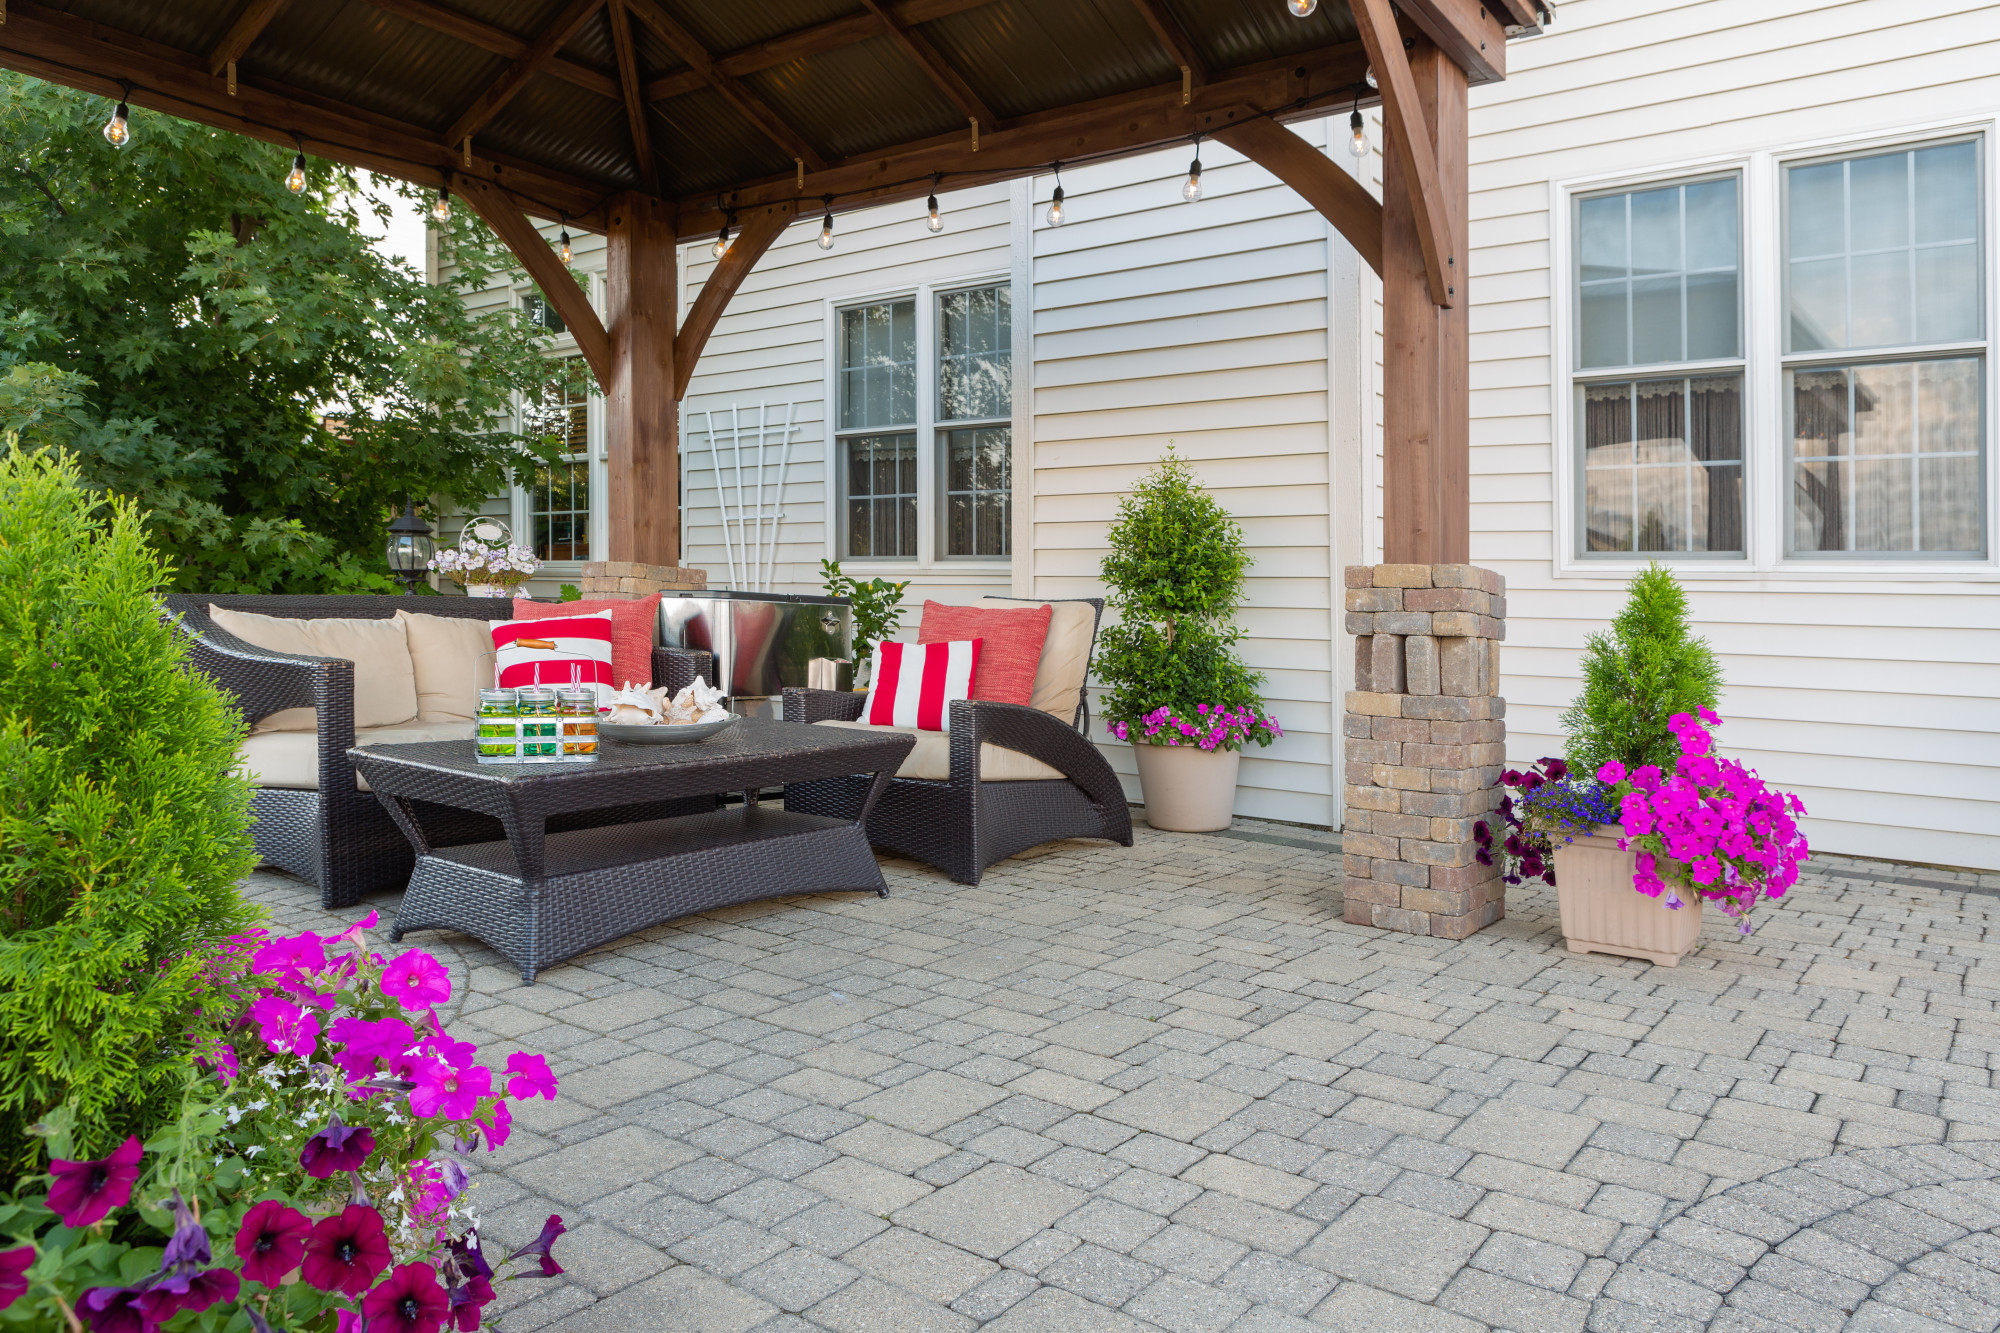 Things to Consider When Building a Patio in Your Backyard